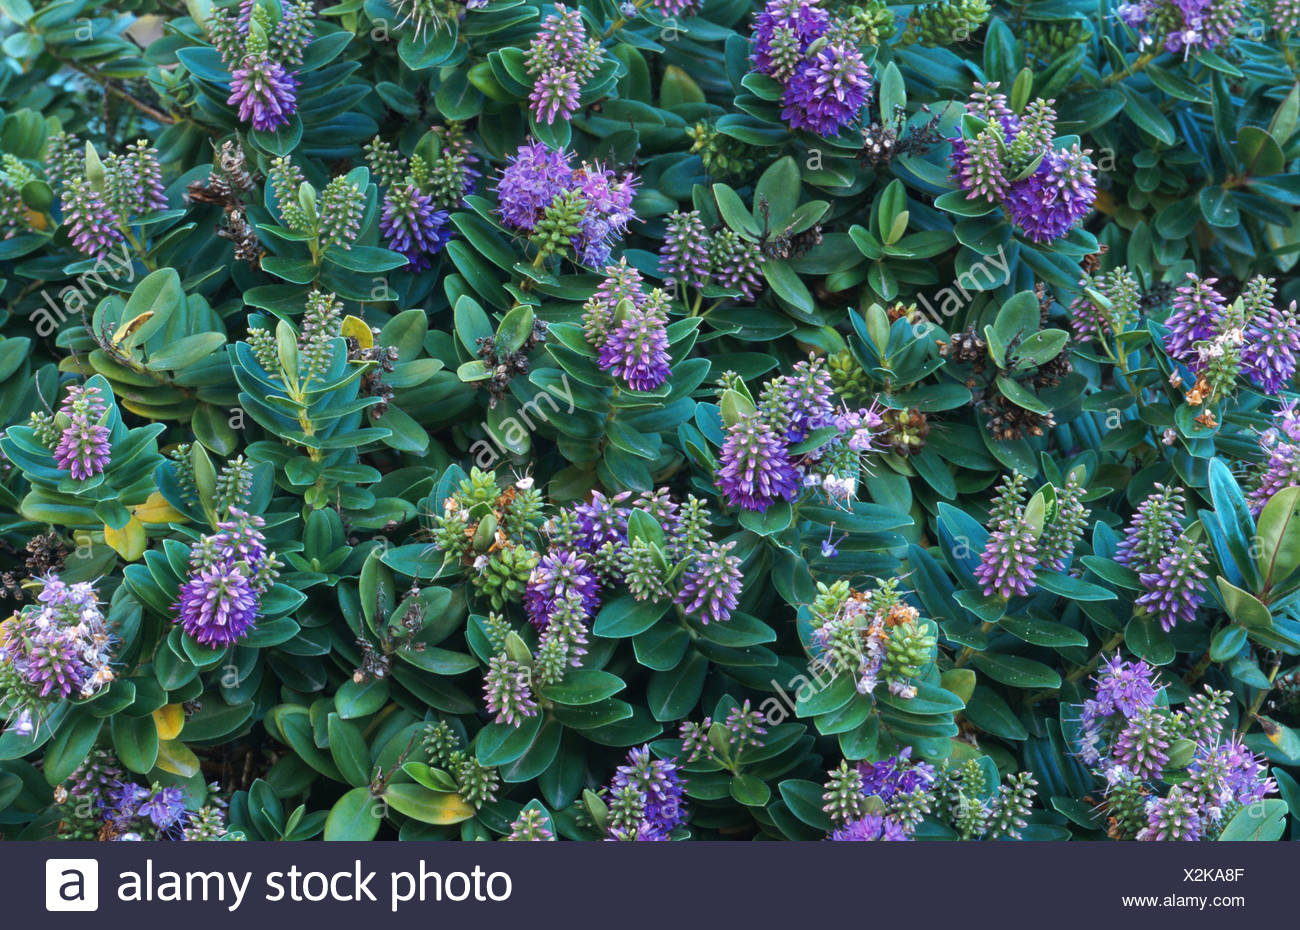 Hebe Andersonii Stock Photos & Hebe Andersonii Stock Images - Alamy